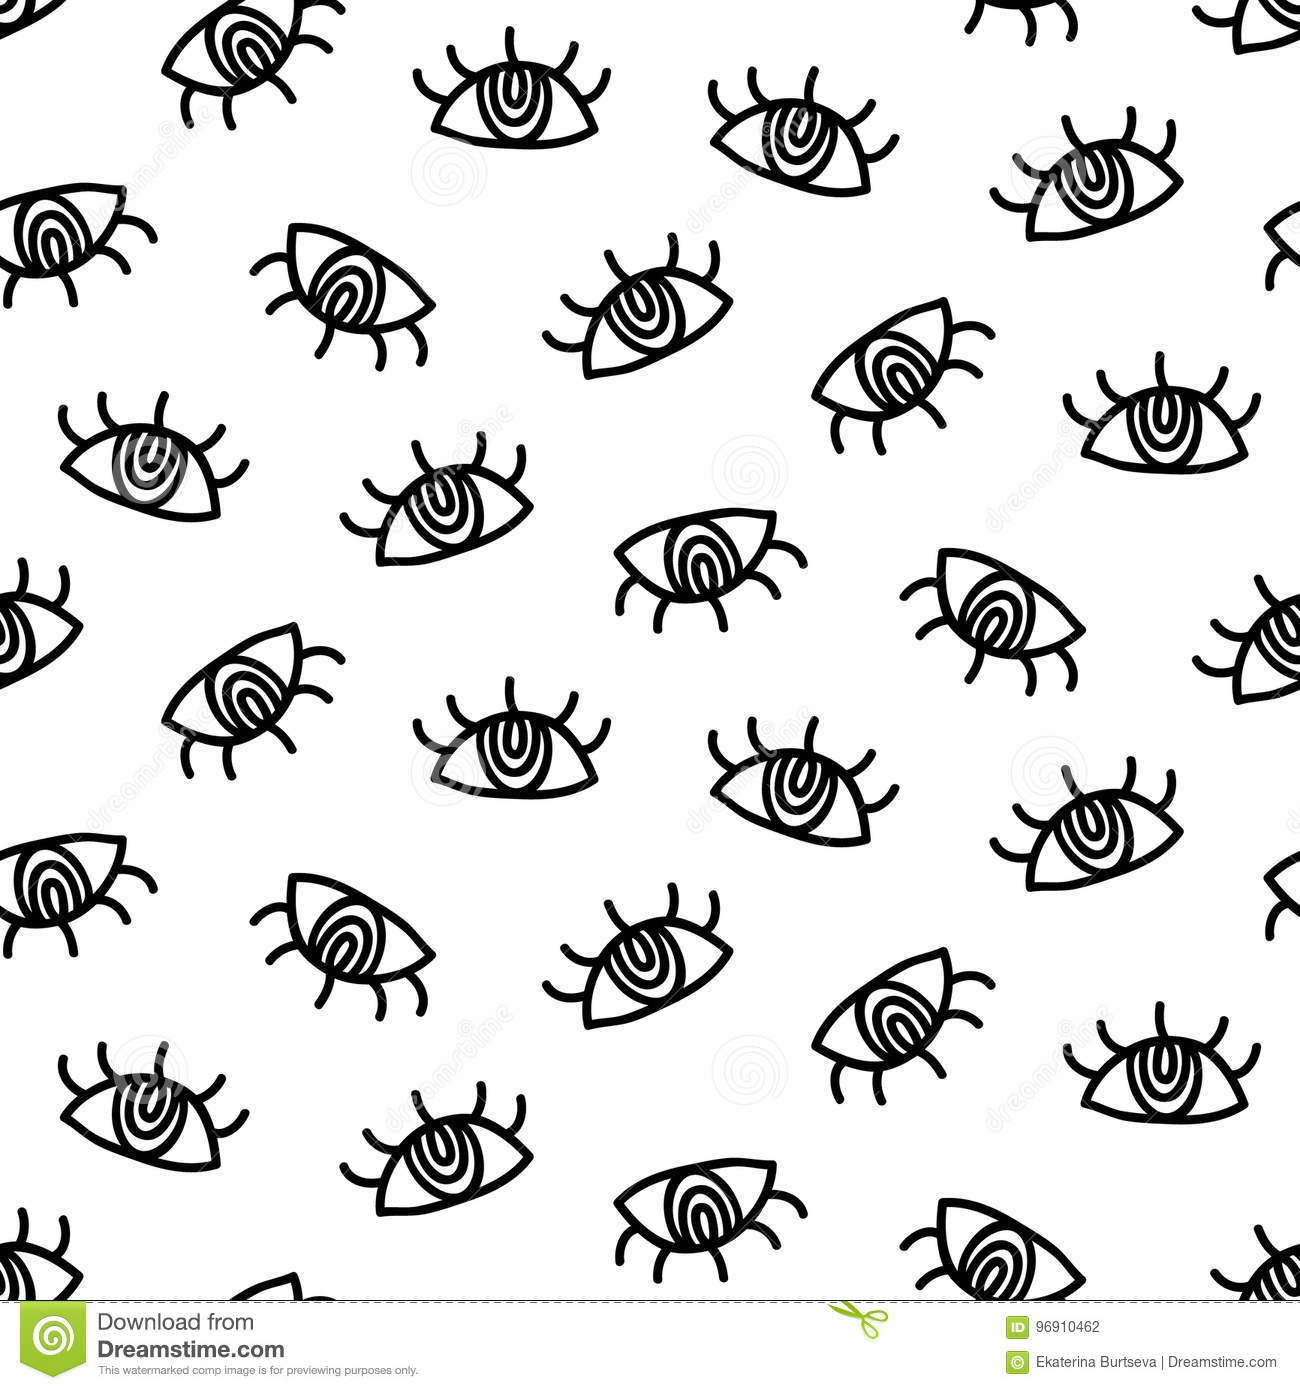 Vector Hand Drawn Eye Simple Doodles Seamless Pattern